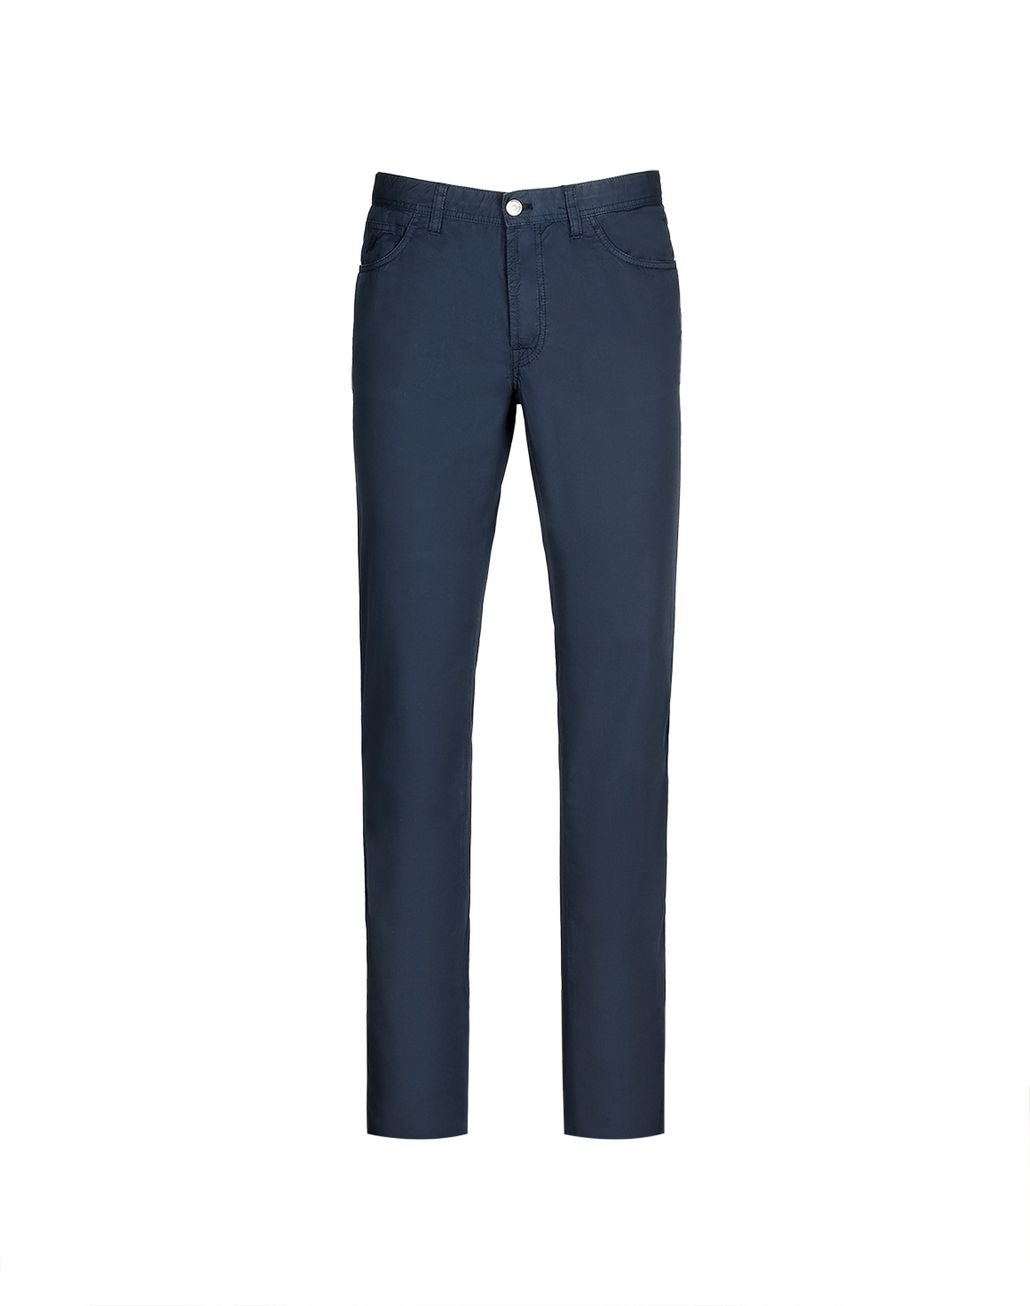 BRIONI Navy Blue Chamonix Five Pockets Trousers Trousers Man f